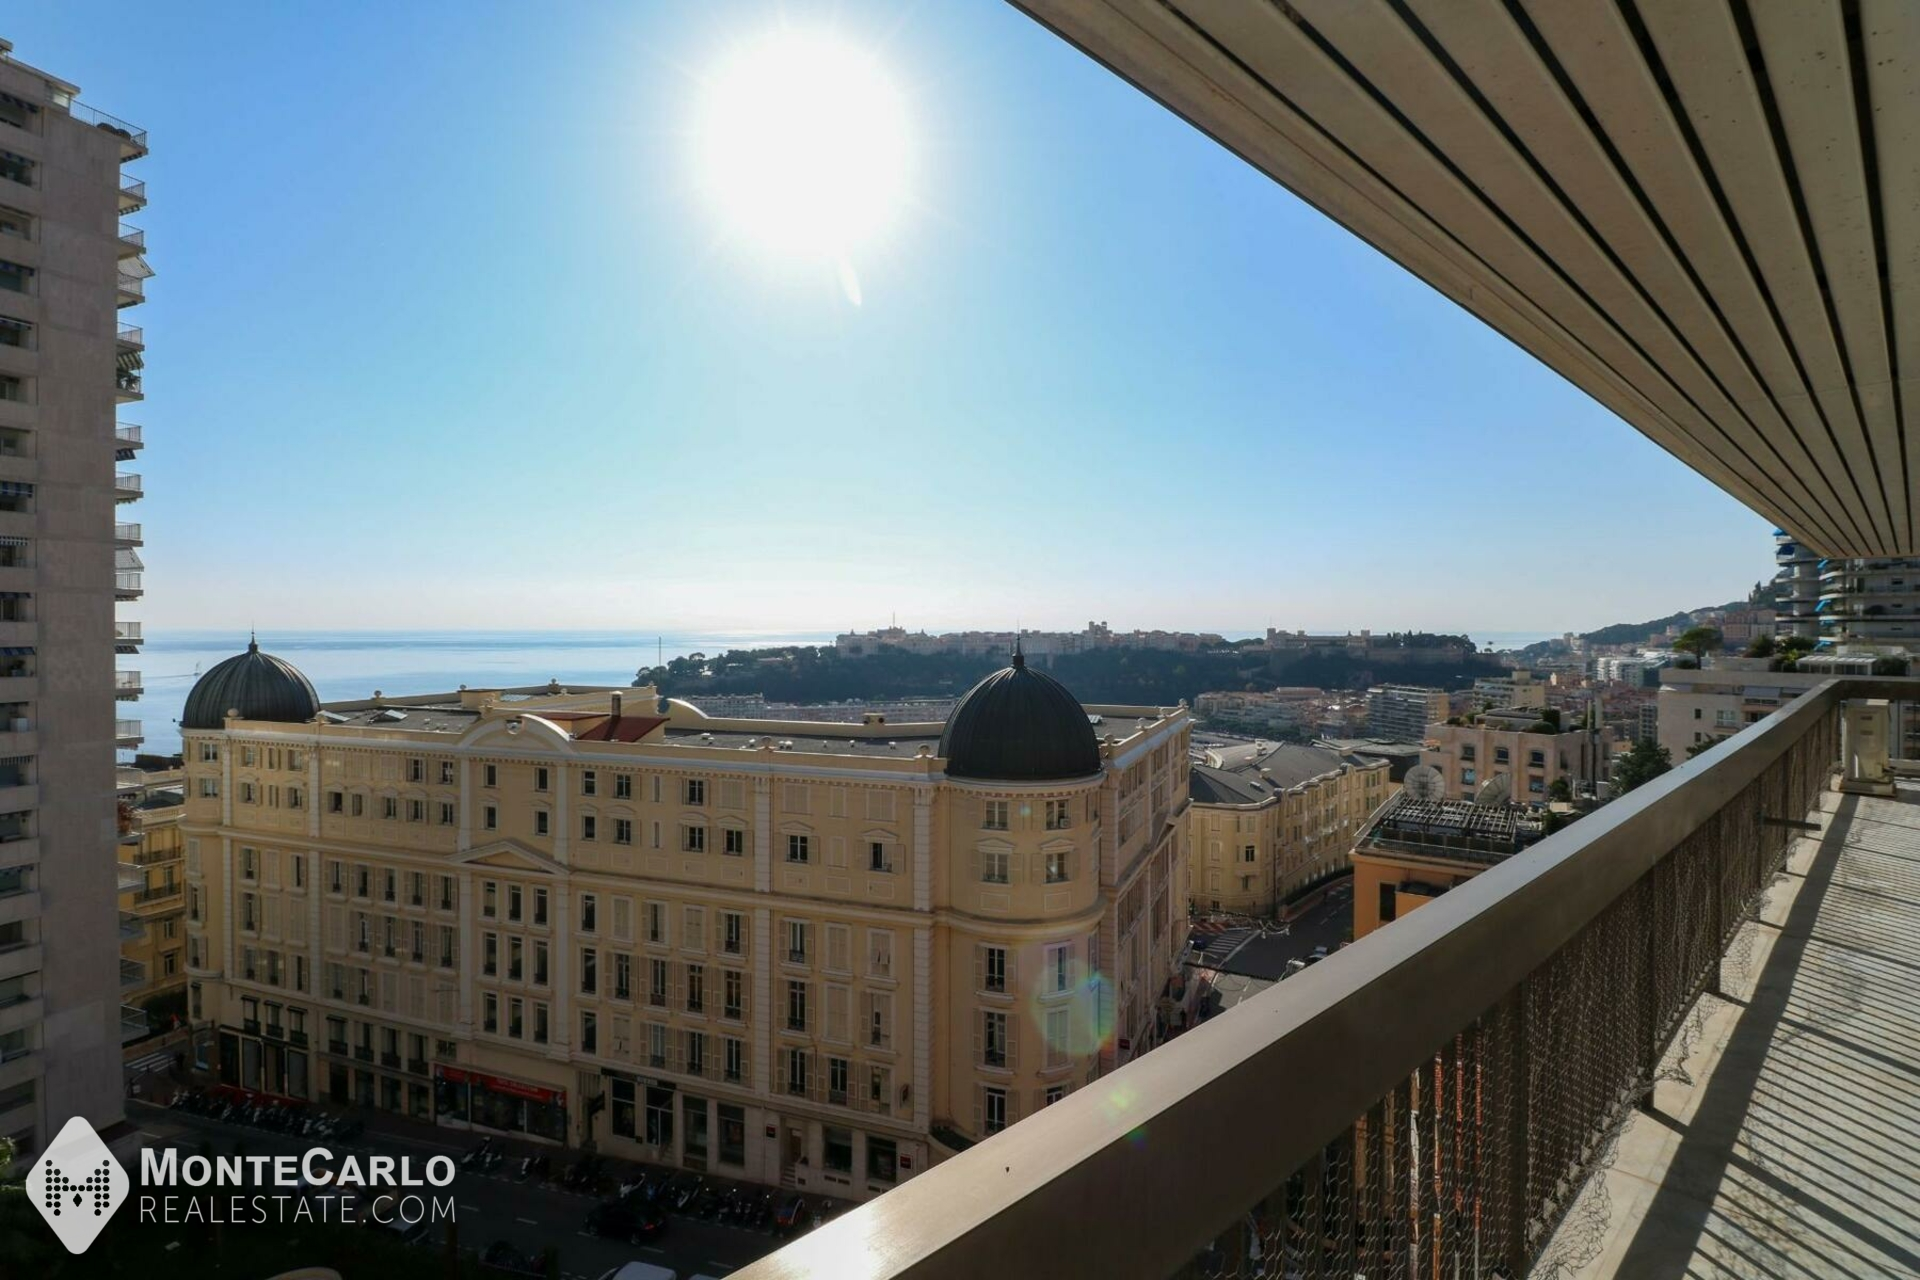 For sale Park Palace - Apartment / 4 rooms : 19 200 000 € | Monte-Carlo Real Estate [517V15649A]